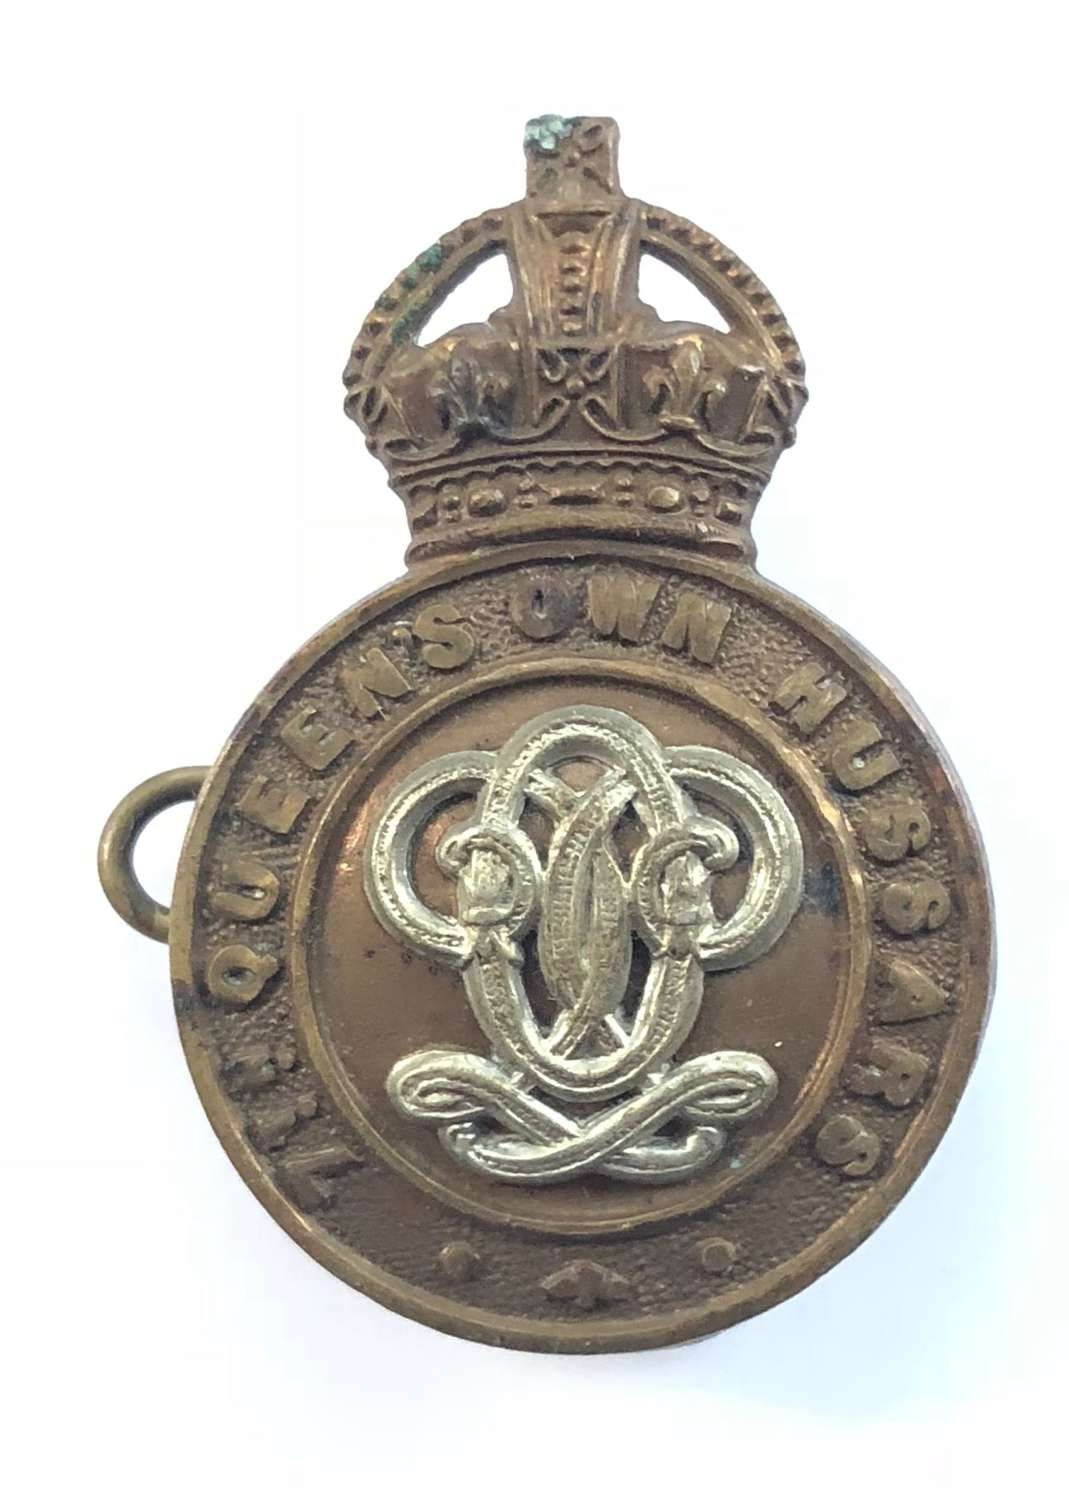 WW1 / WW2 7th Hussars Cap Badge.